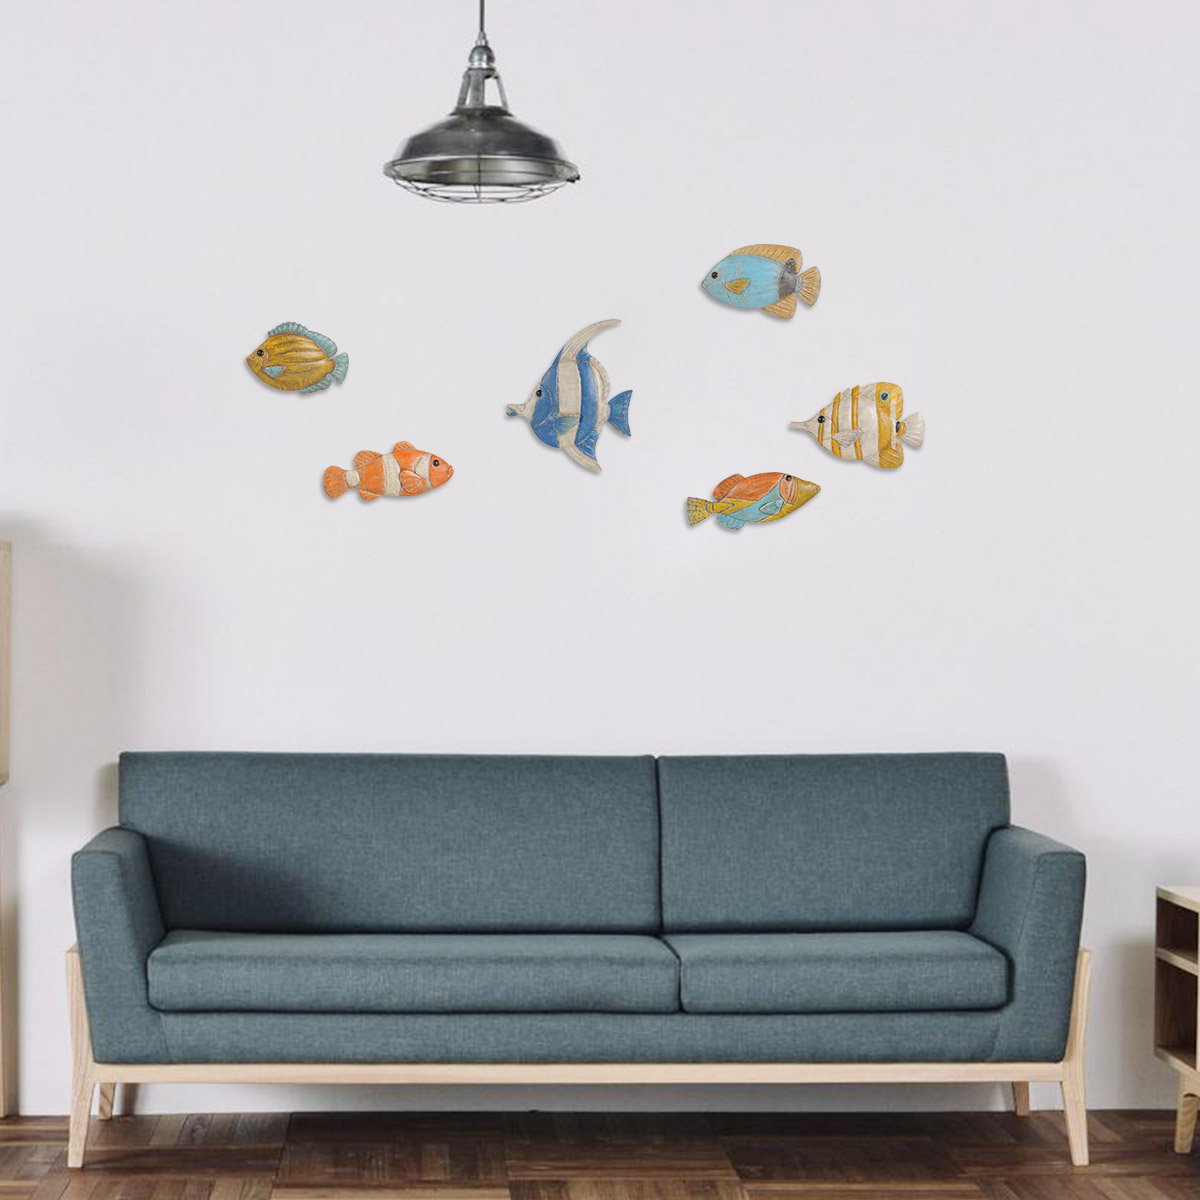 Elegant Fish Wall Hanging 1 Iron Wall Decor Creative Ornament Craft Wall Setting  Wall Hanging Marine Life